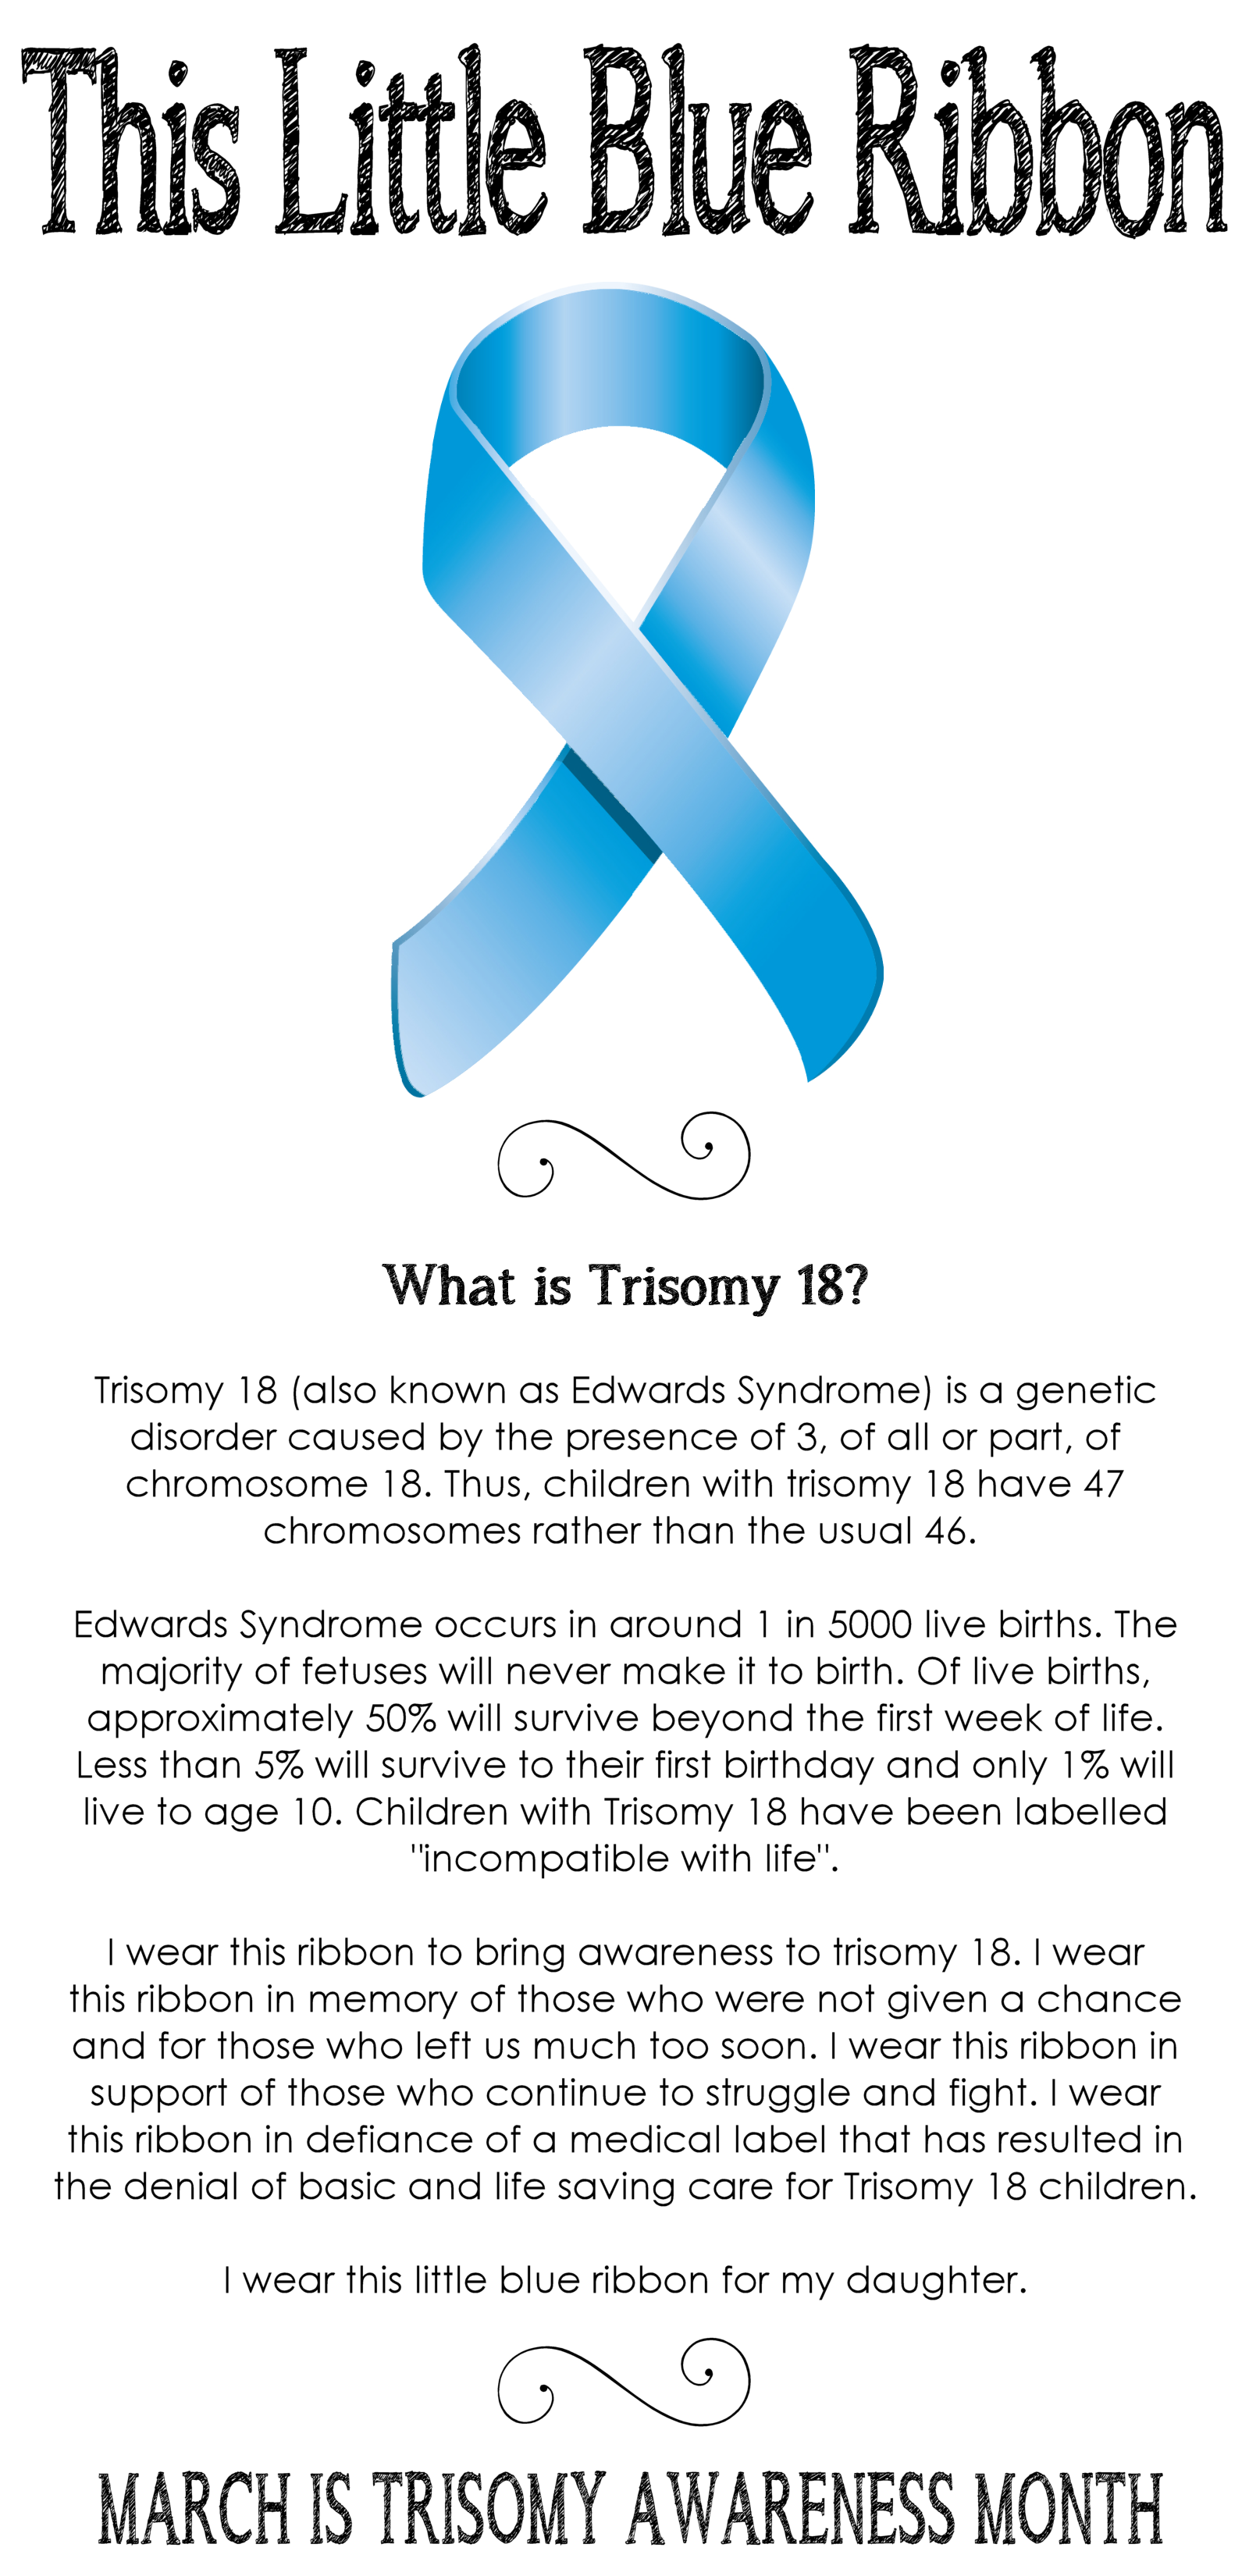 Why do children suffer from Edwards syndrome